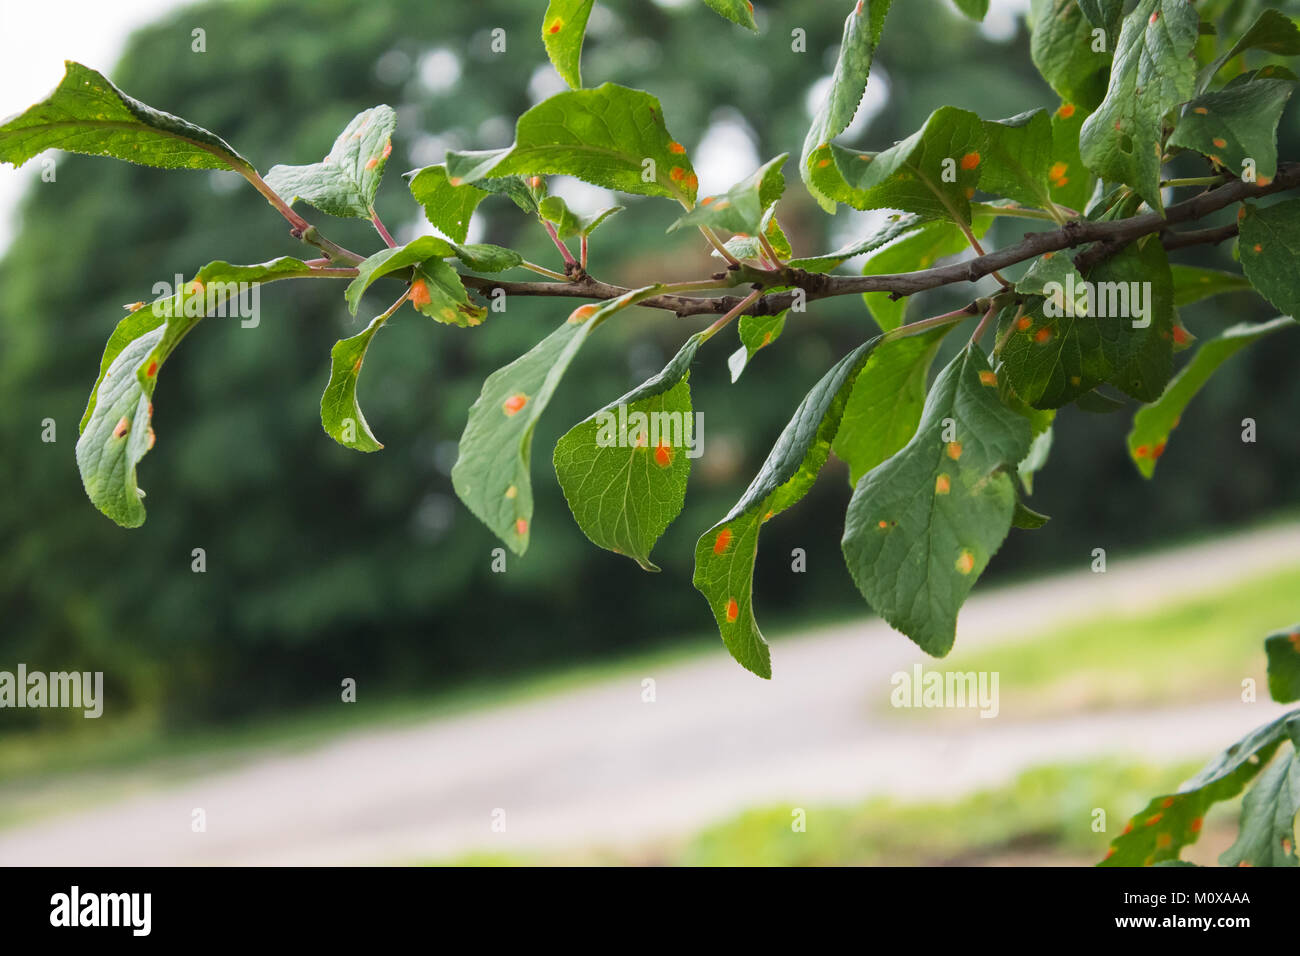 natural photo plum tree branche with leaves affected by the disease - Stock Image